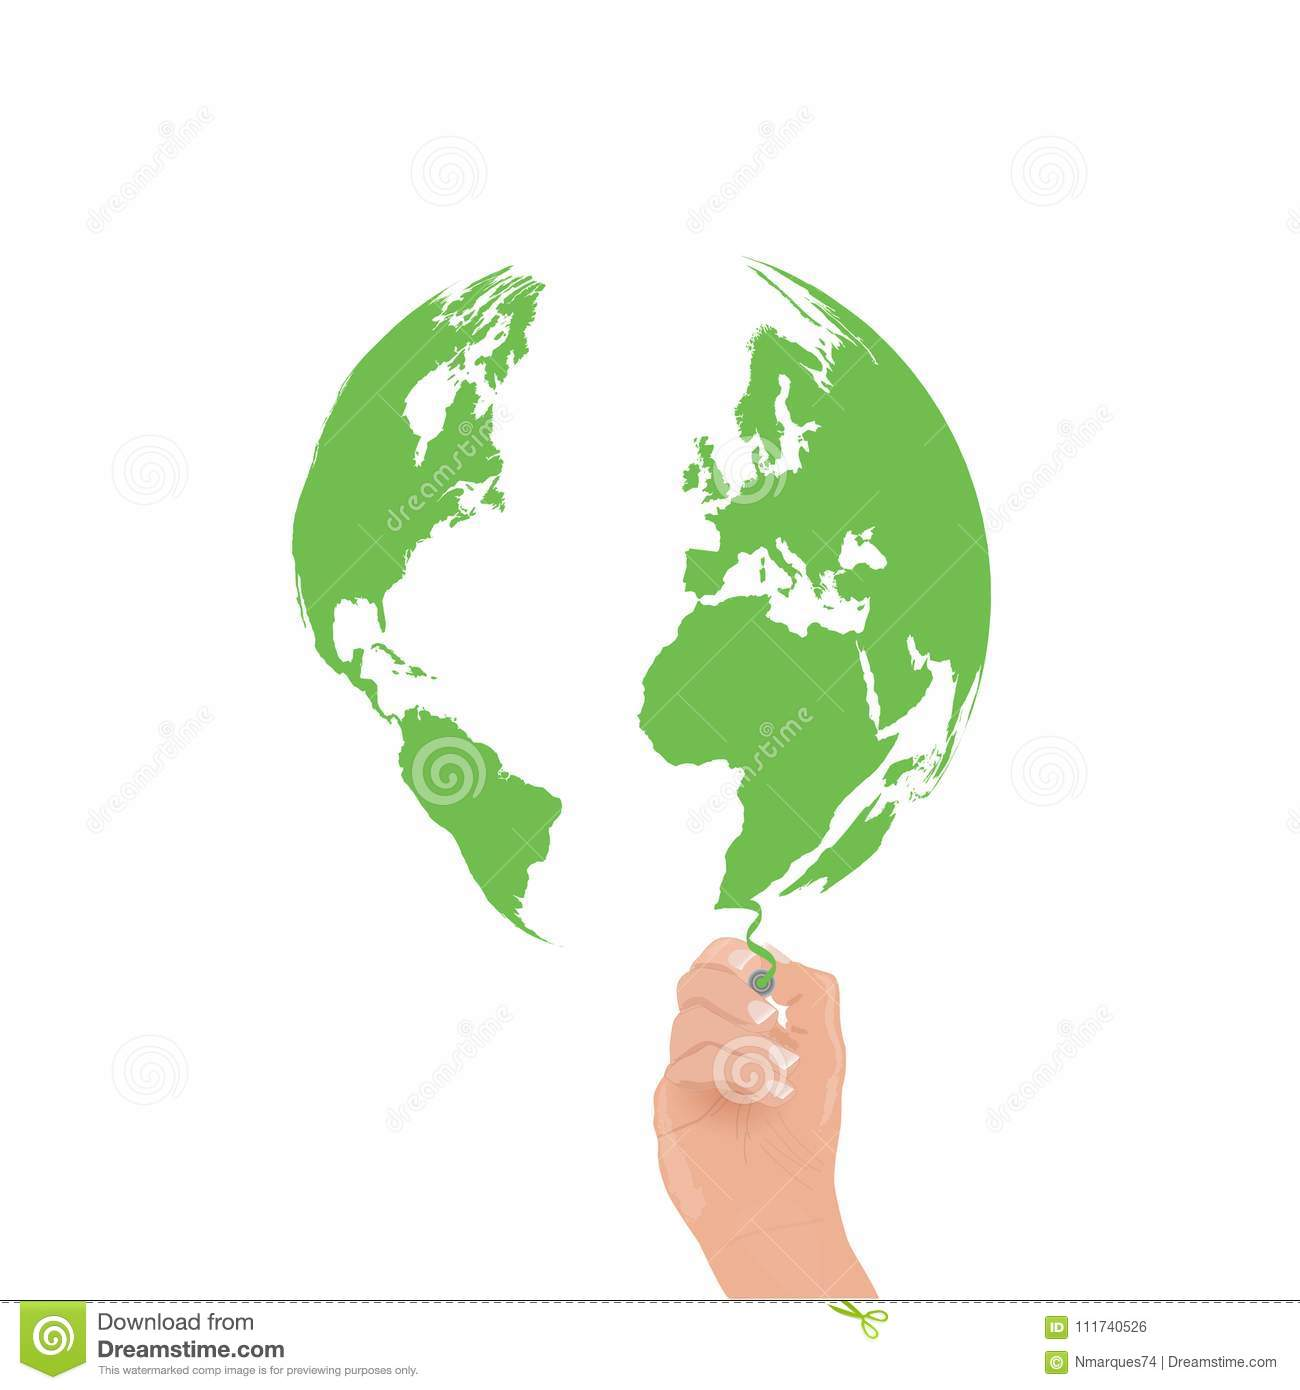 Earth draw green stock illustration illustration of idea 111740526 image of a hand drawing a green world map gumiabroncs Gallery